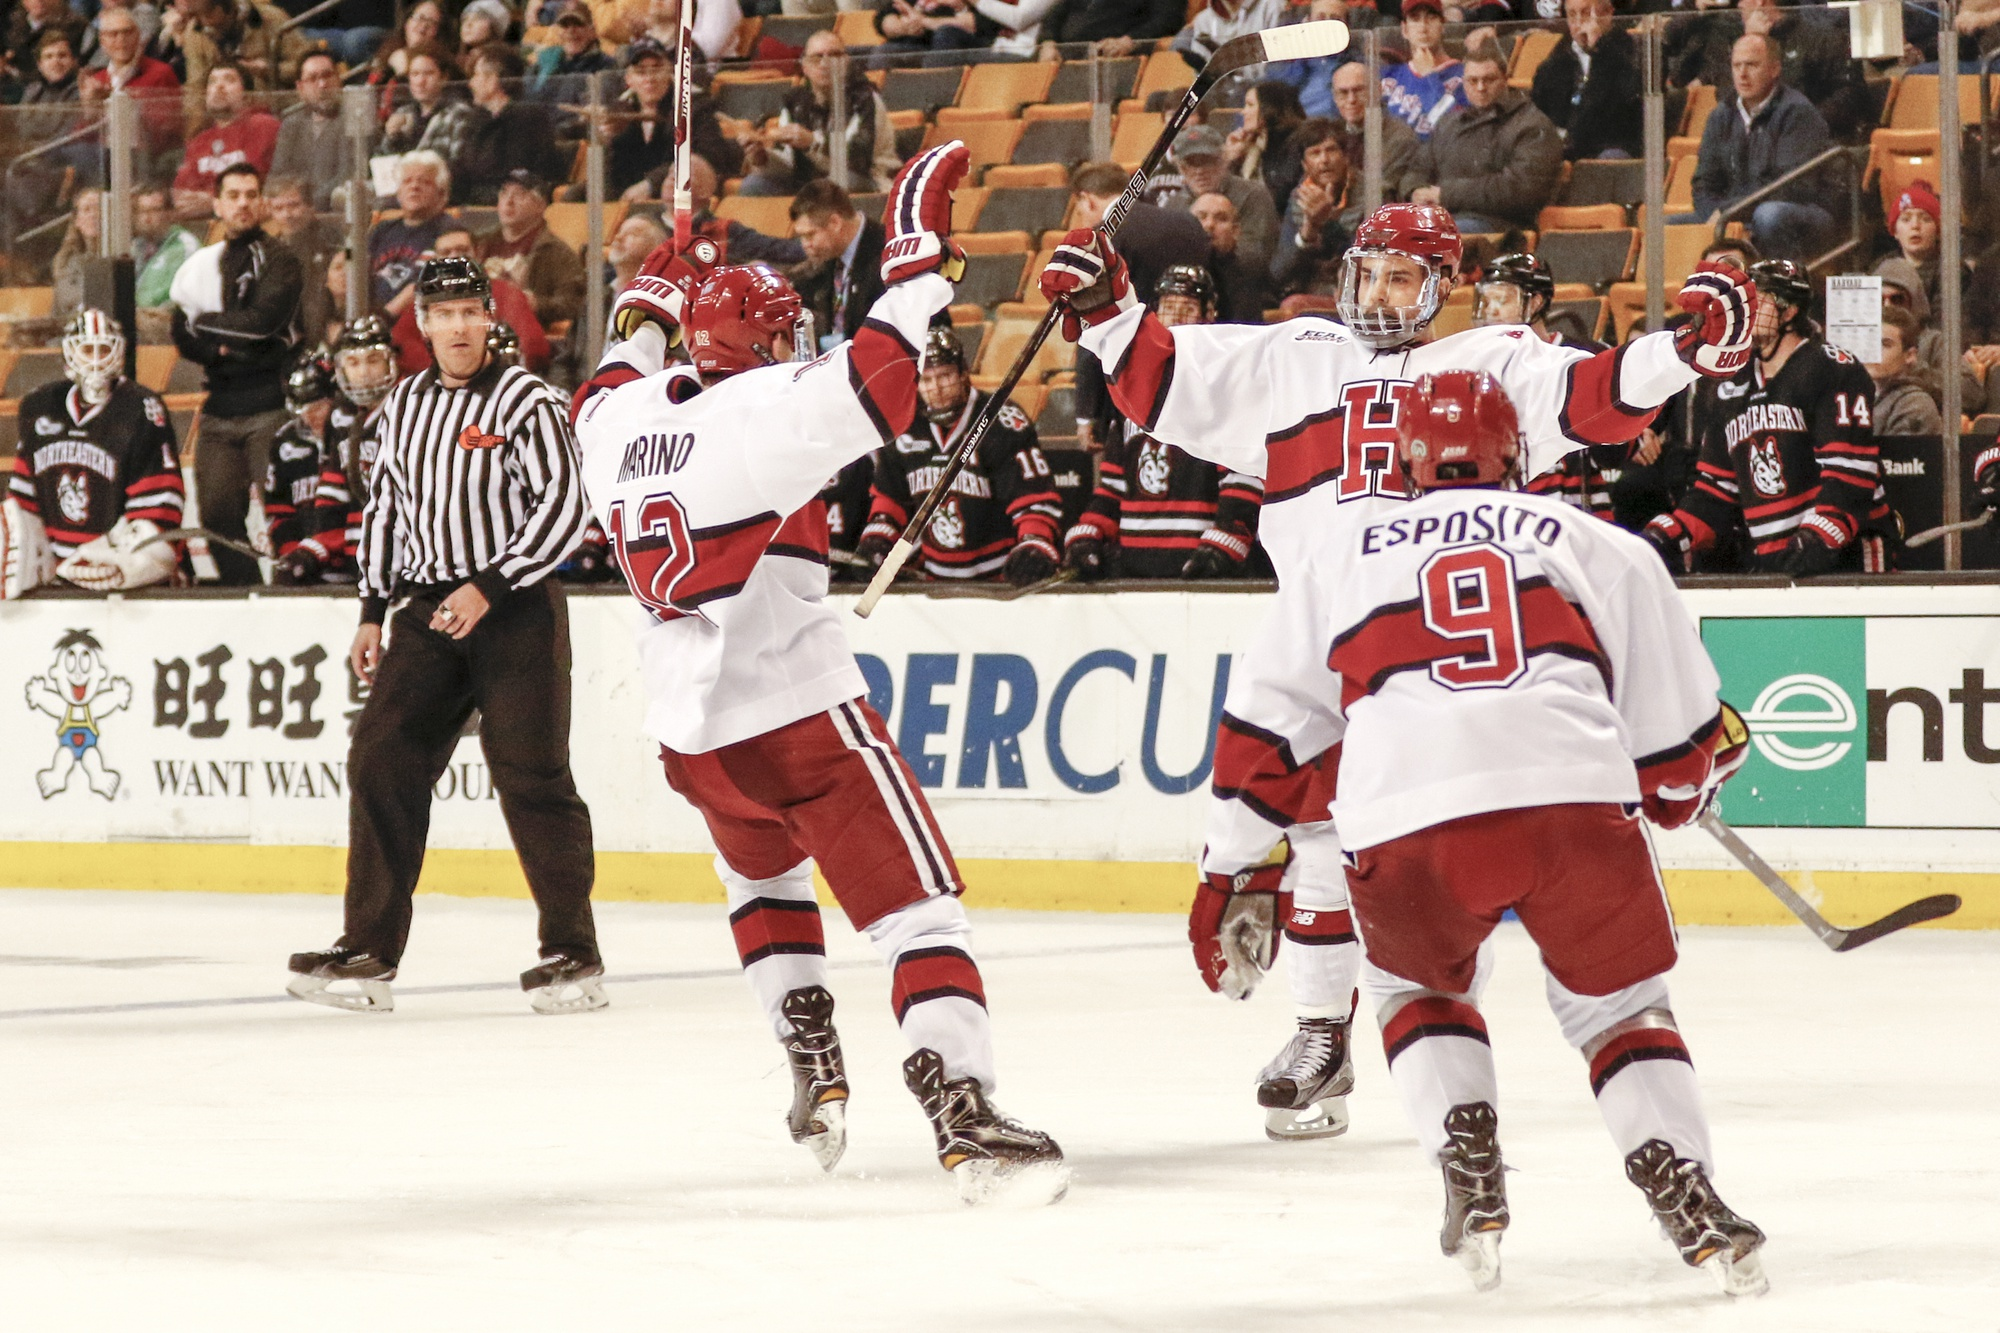 Crimson players exult after a goal in the first round of the Beanpot against Northeastern.